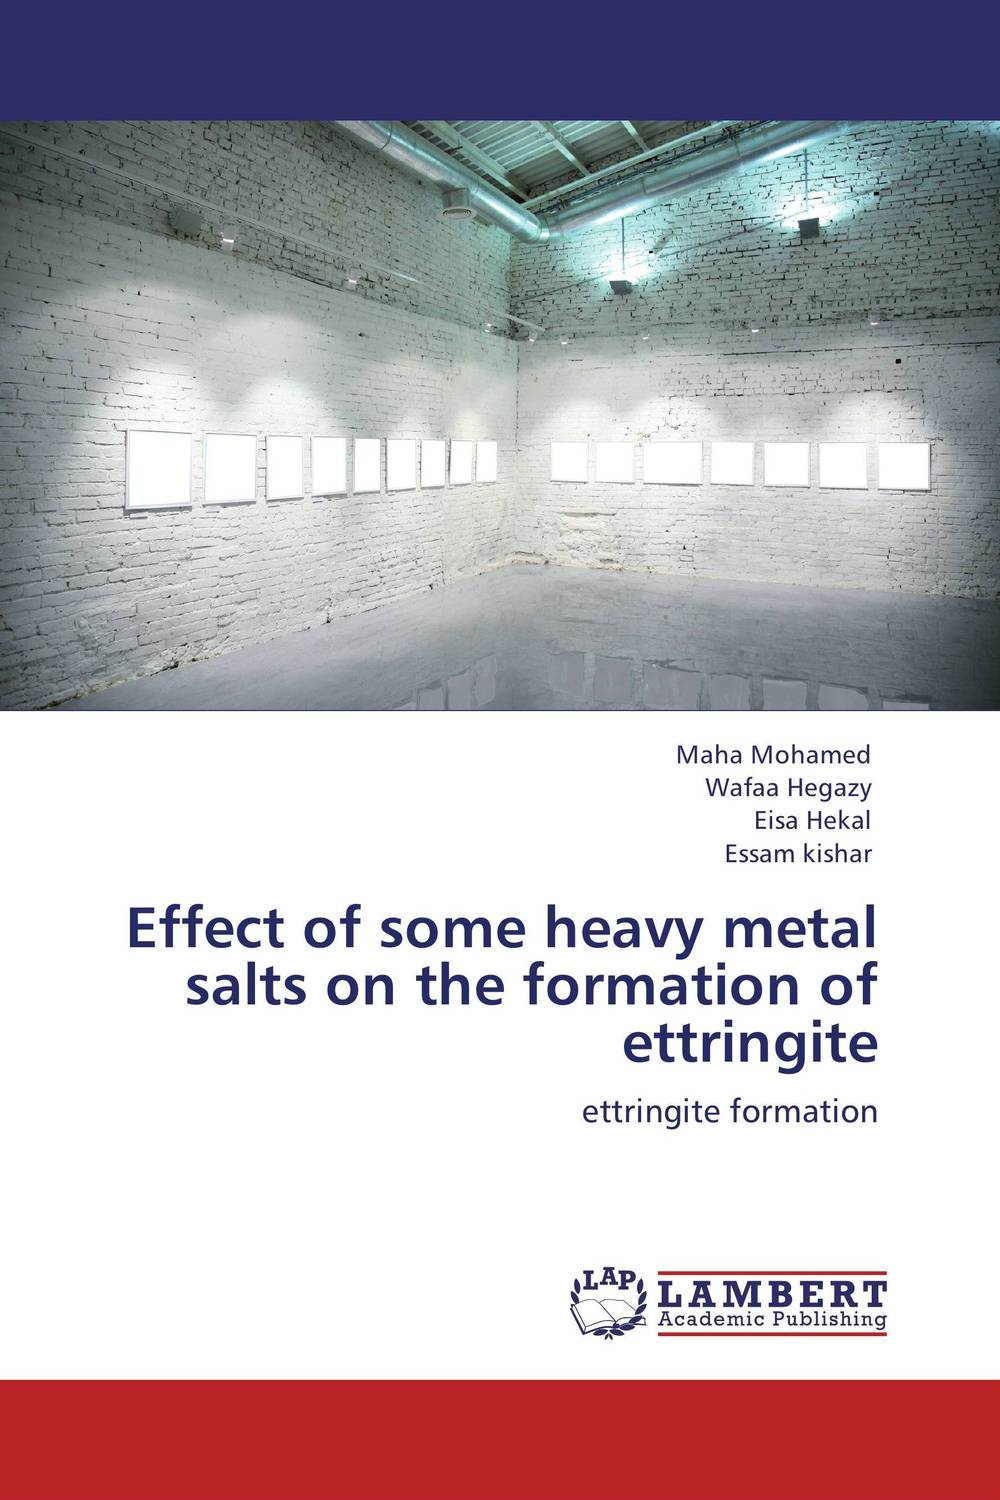 Effect of some heavy metal salts on the formation of ettringite marwan a ibrahim effect of heavy metals on haematological and testicular functions